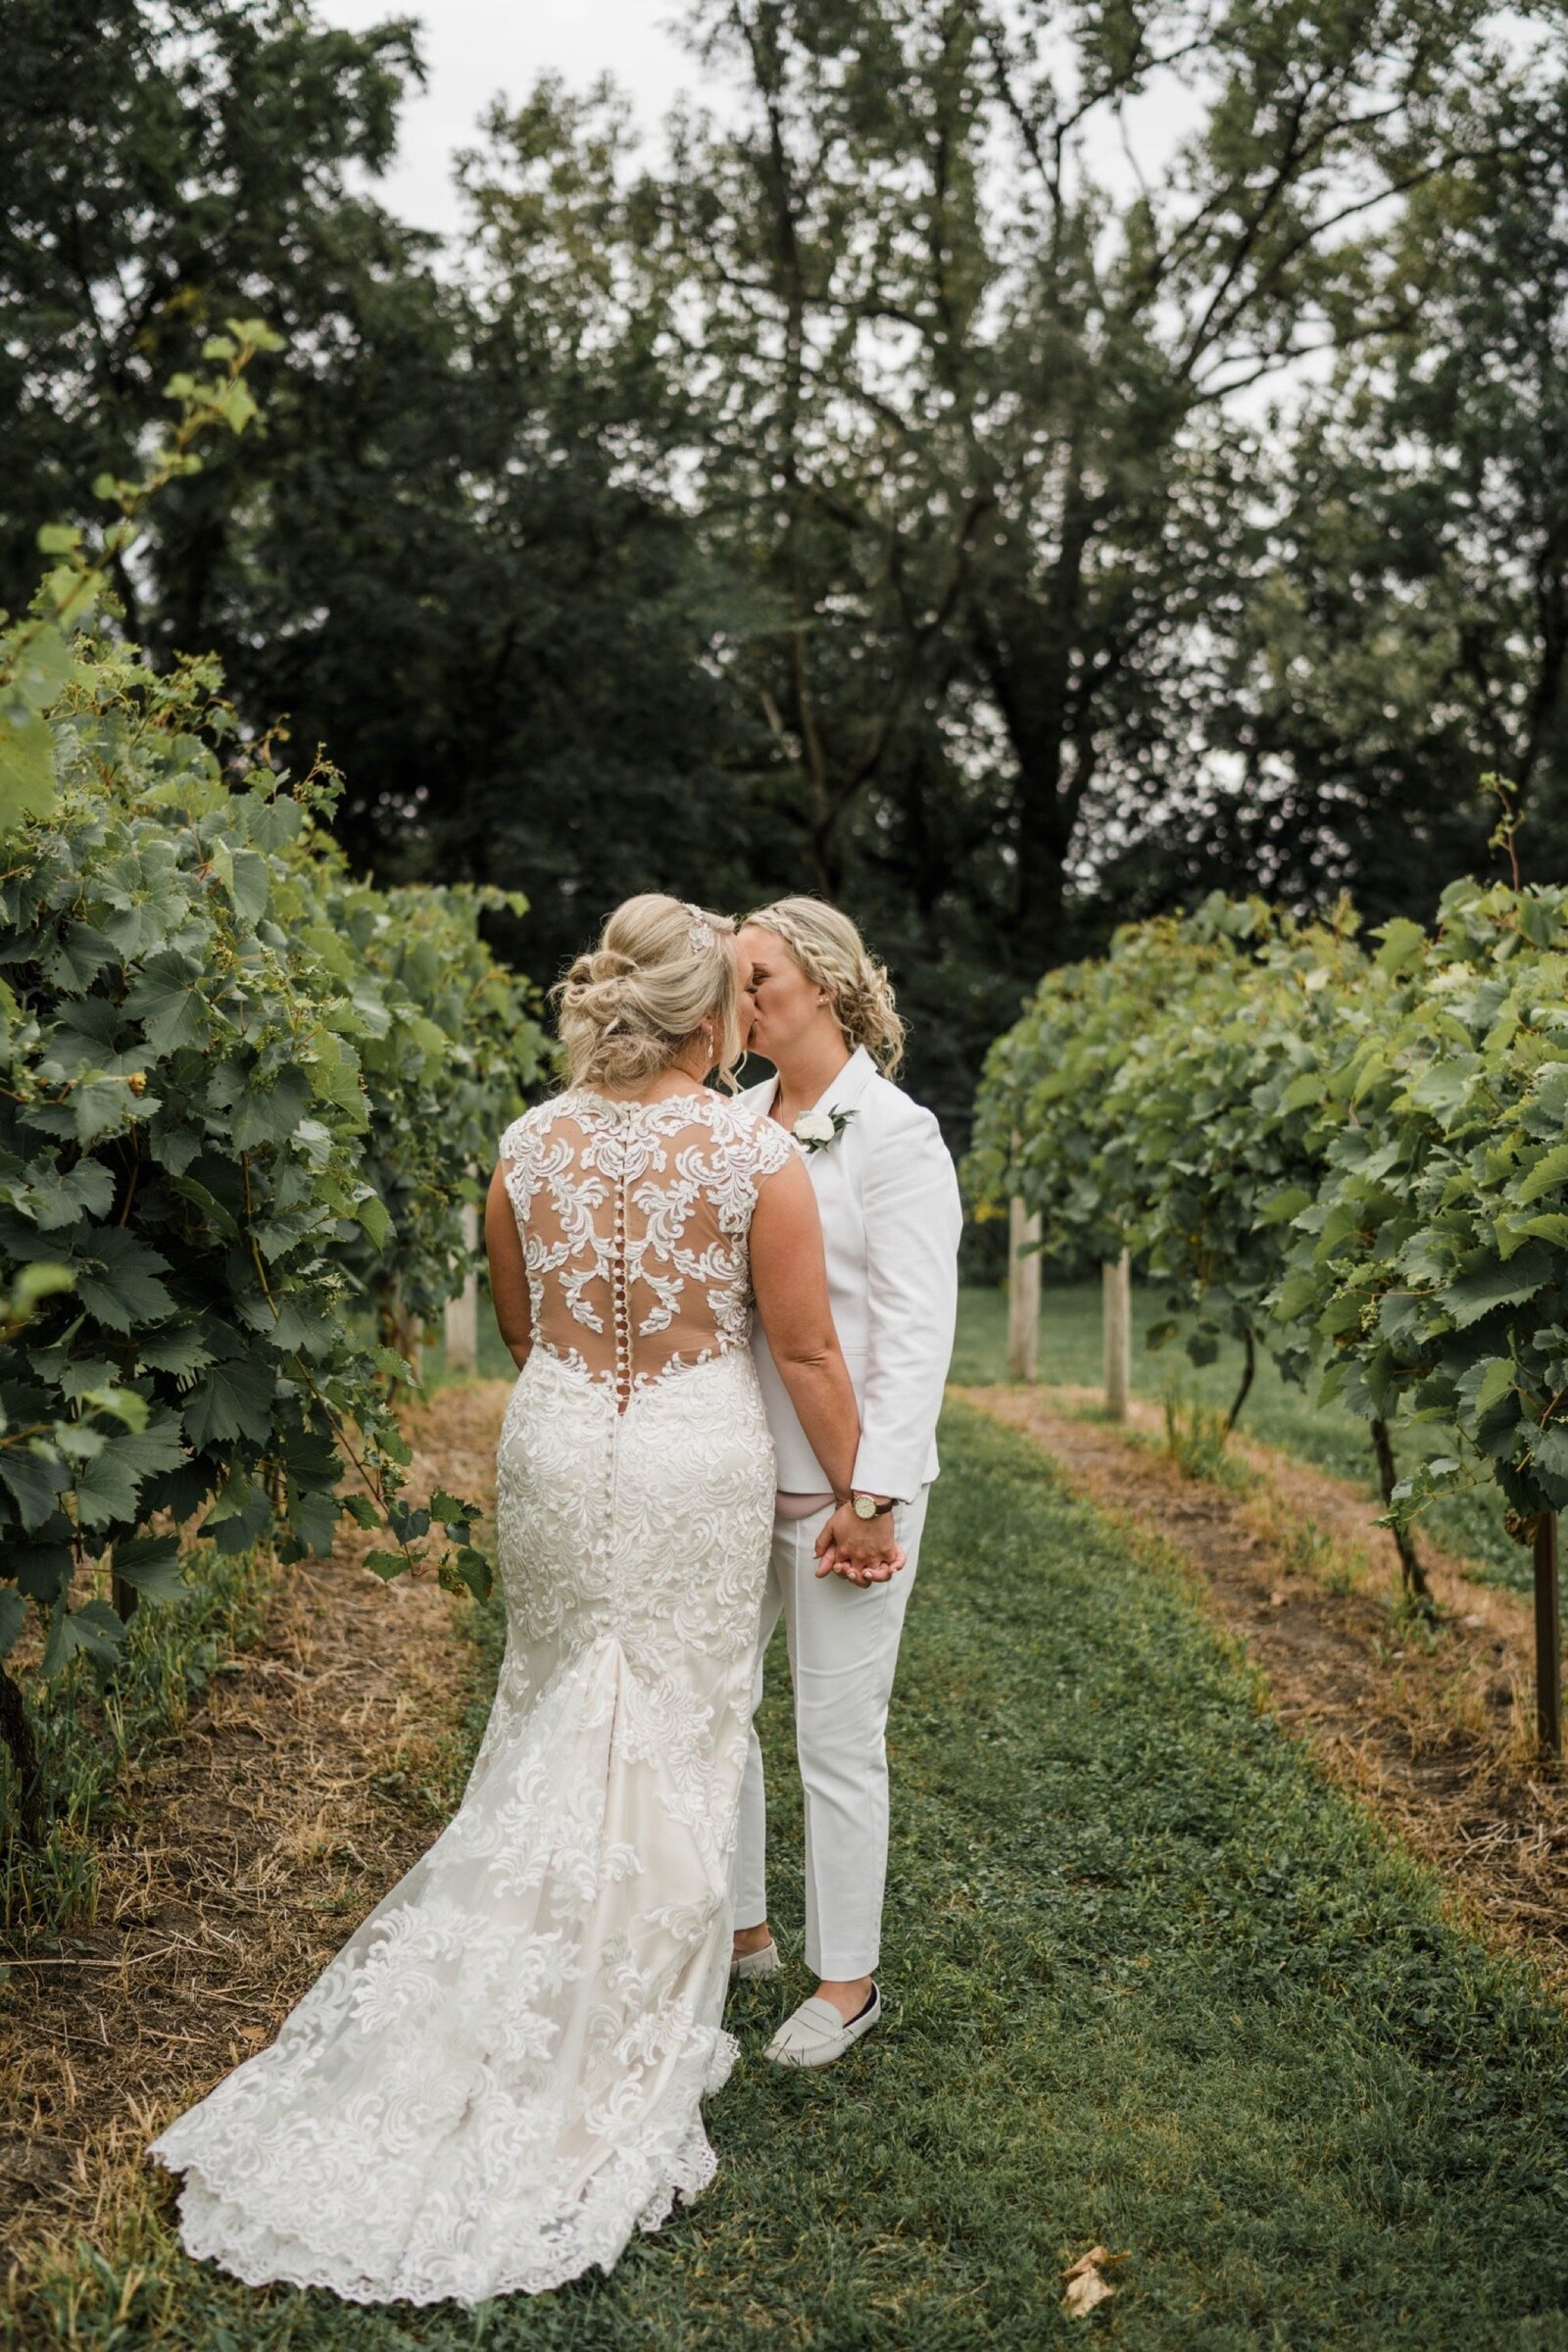 LGBTQ couple kisses in winery at the chateau in Iowa